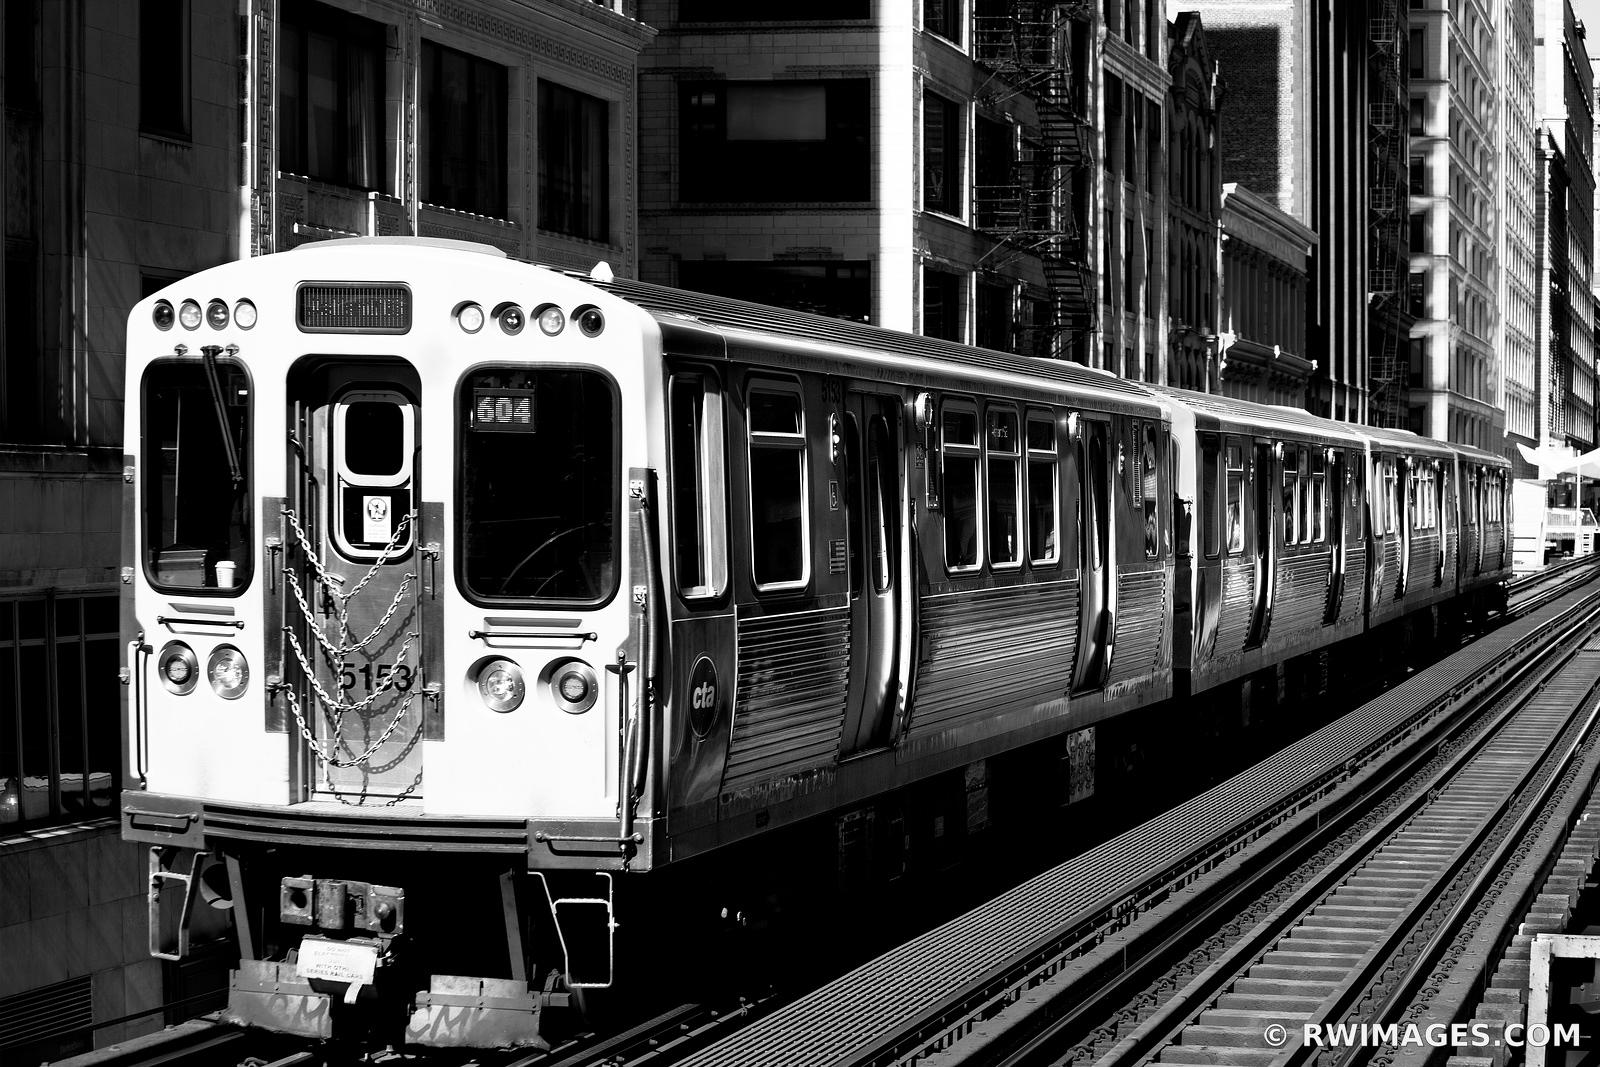 EL TRAIN DOWNTOWN CHICAGO ILLINOIS BLACK AND WHITE